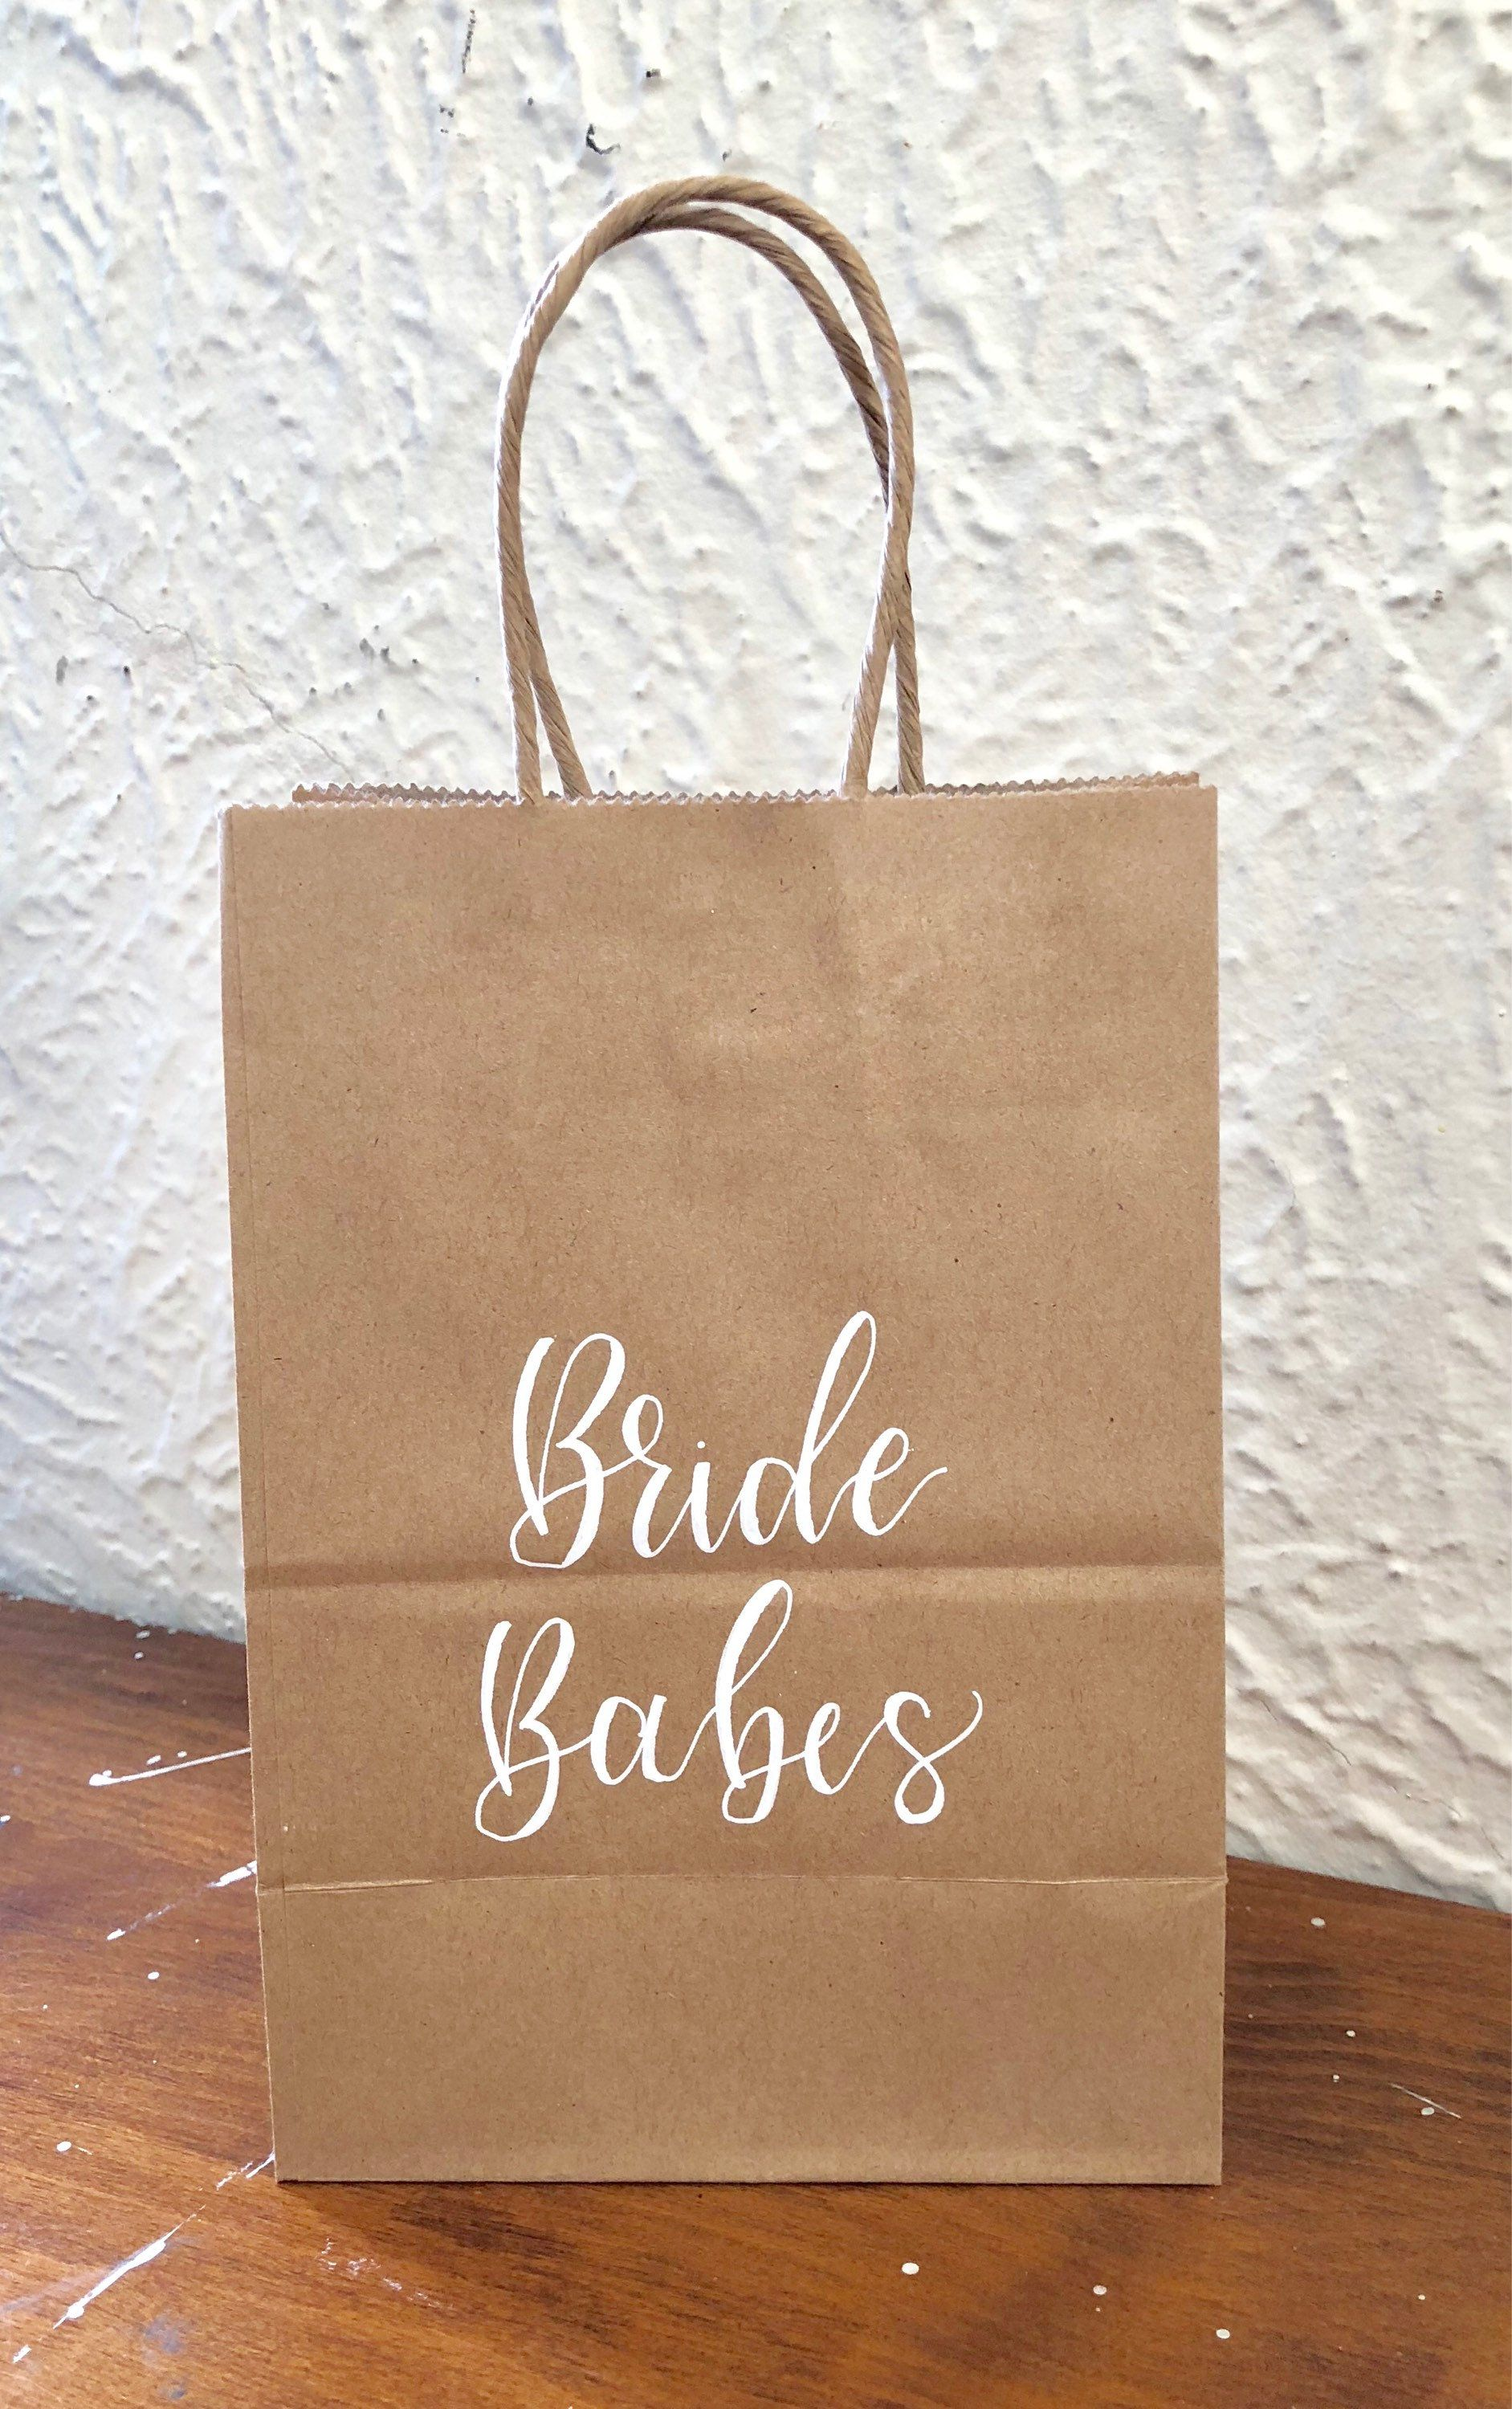 Kraft Bride Babes Gift Bags Hand Letter Bags Wedding Gift Bags